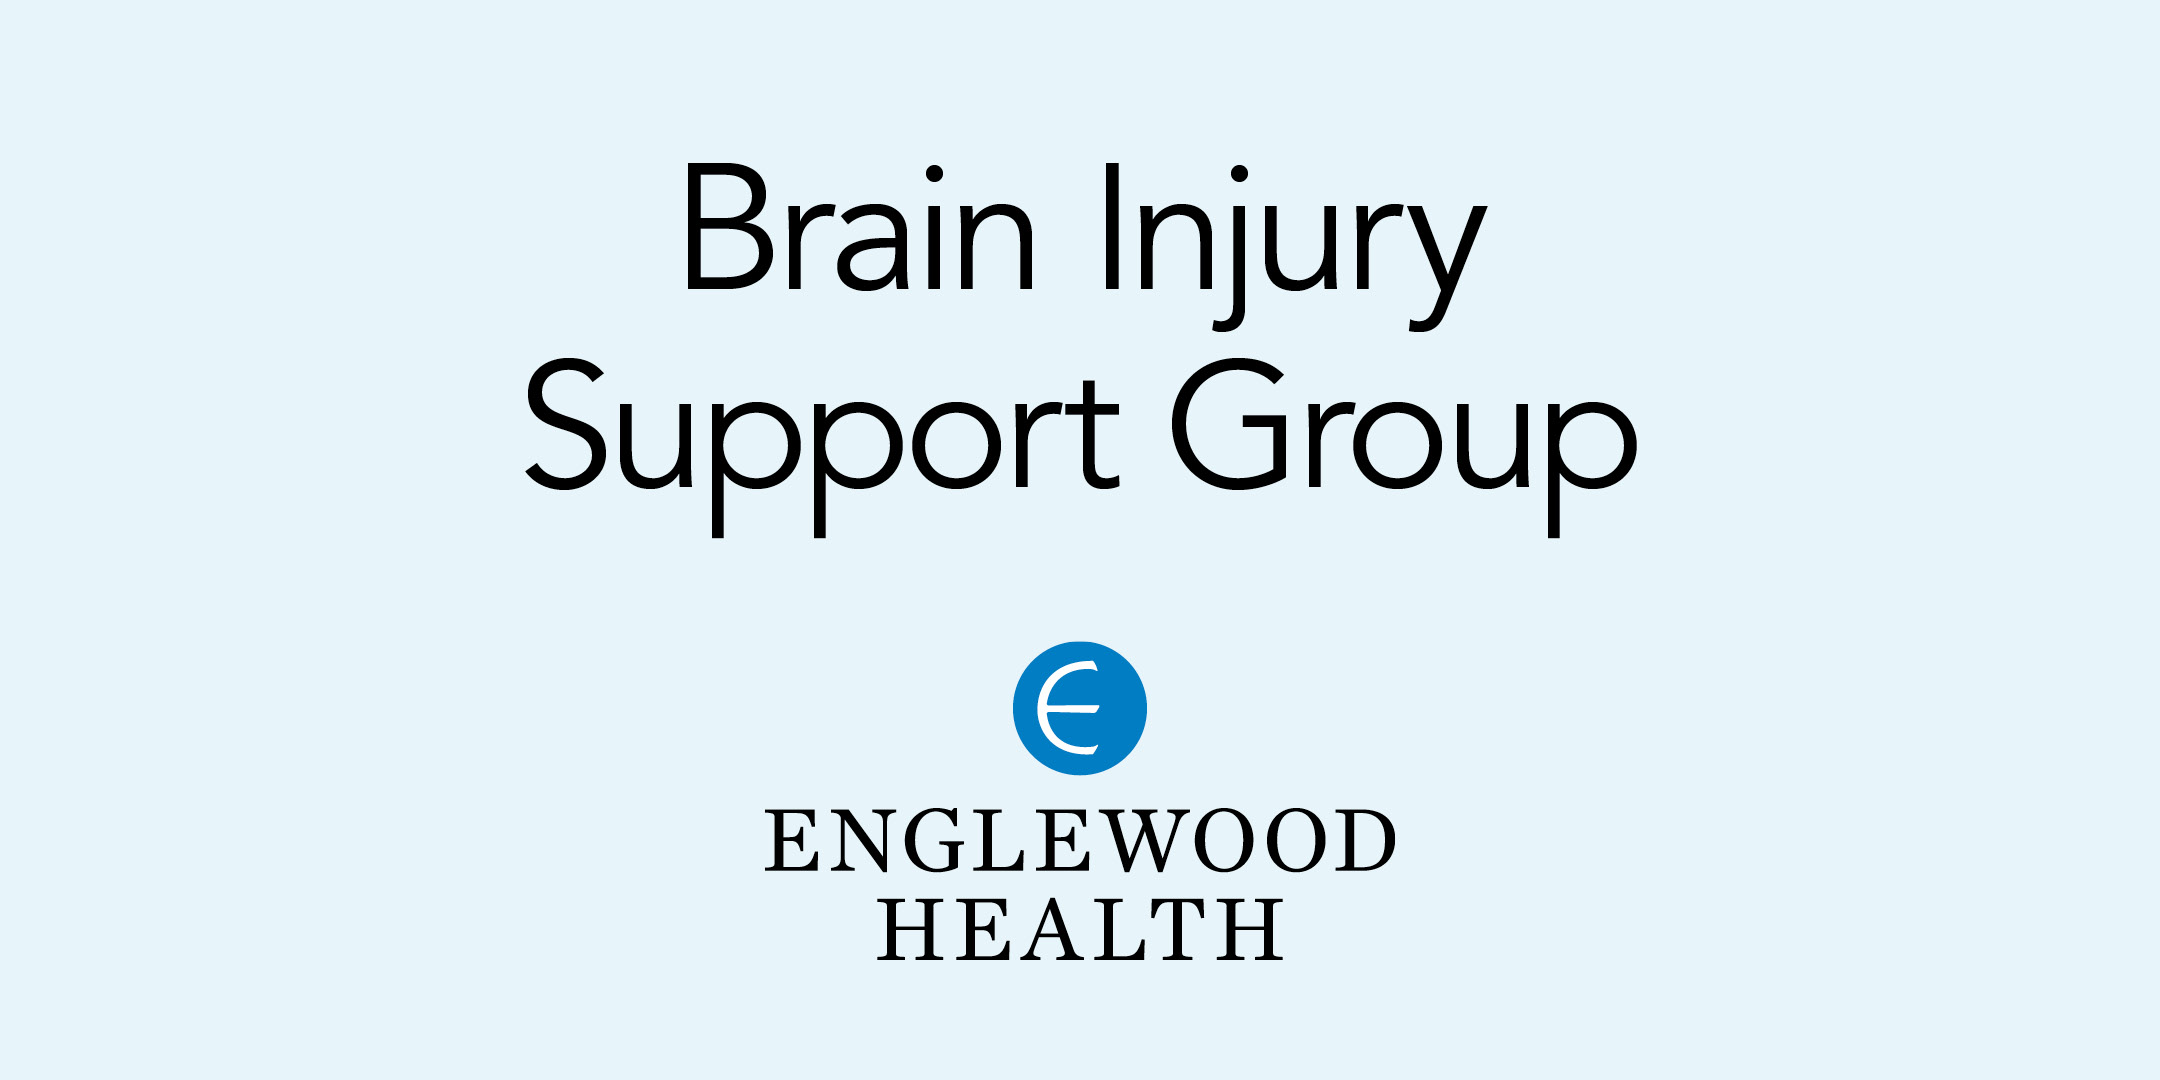 More info: Brain Injury Support (Bergen County TBI Group)